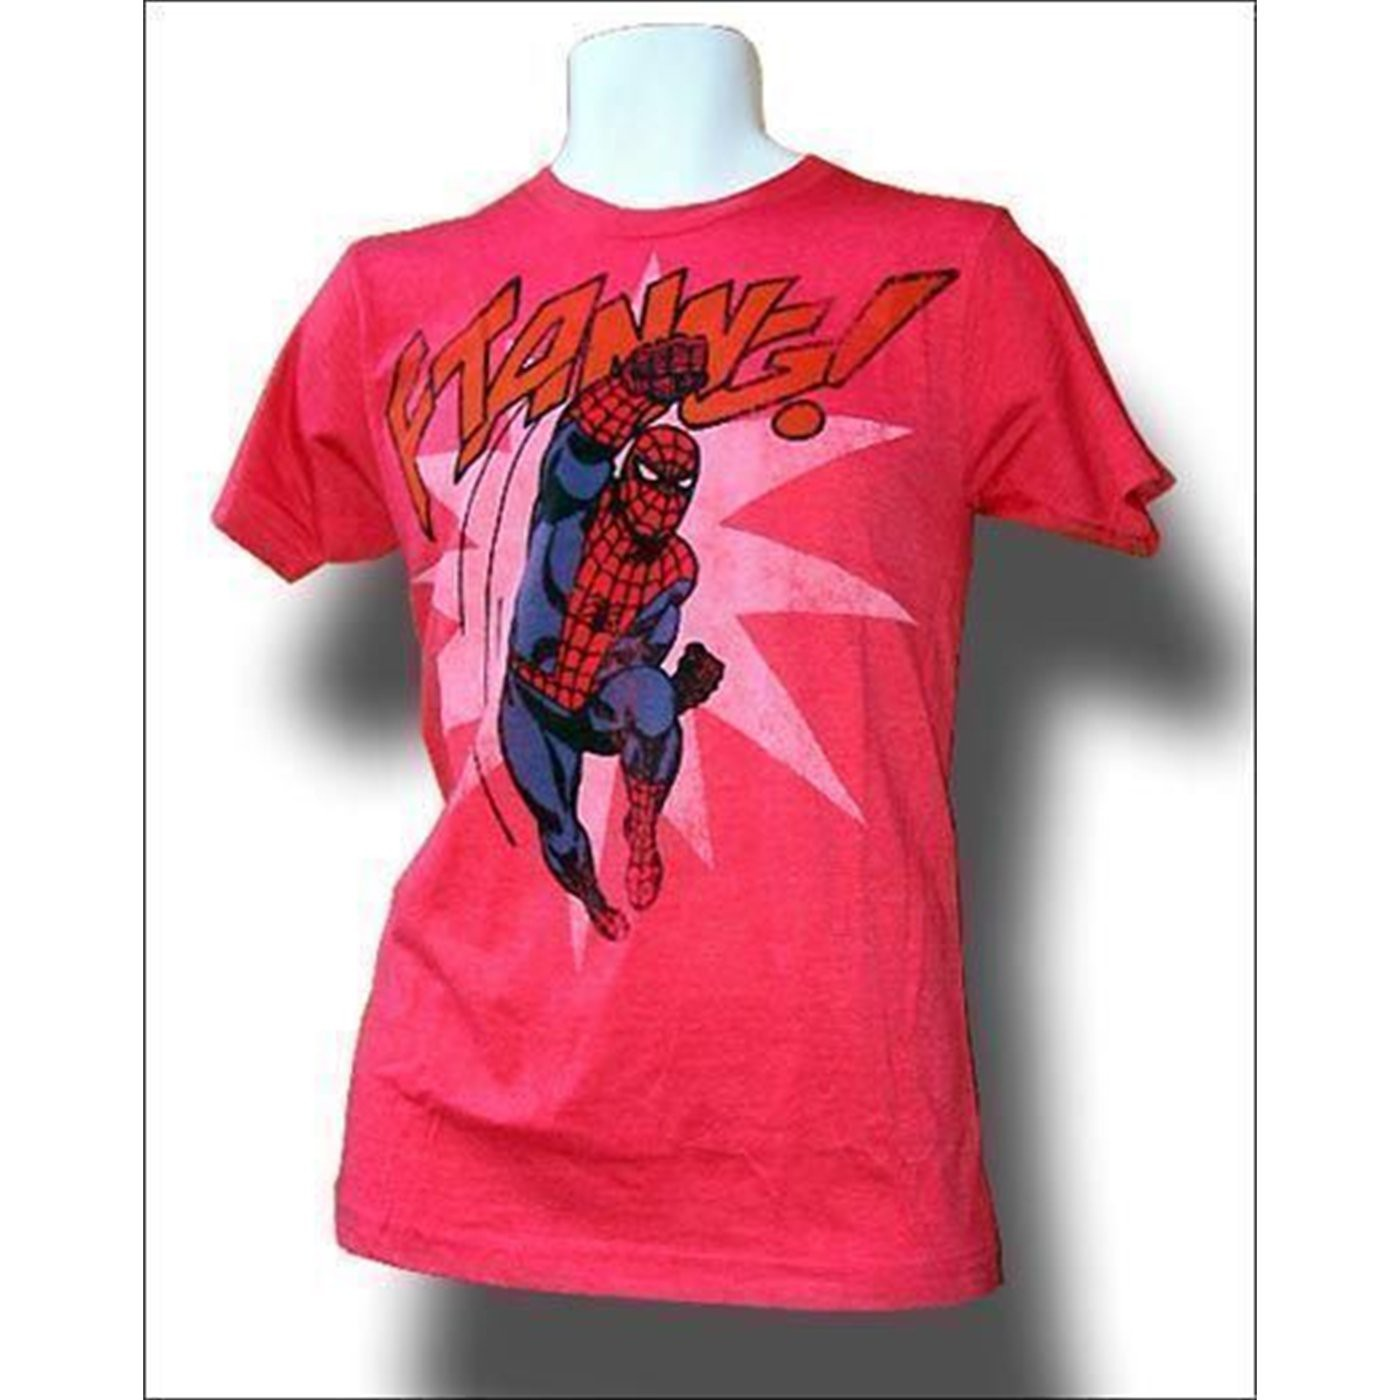 Spiderman Ftanng! Red Distressed T-Shirt